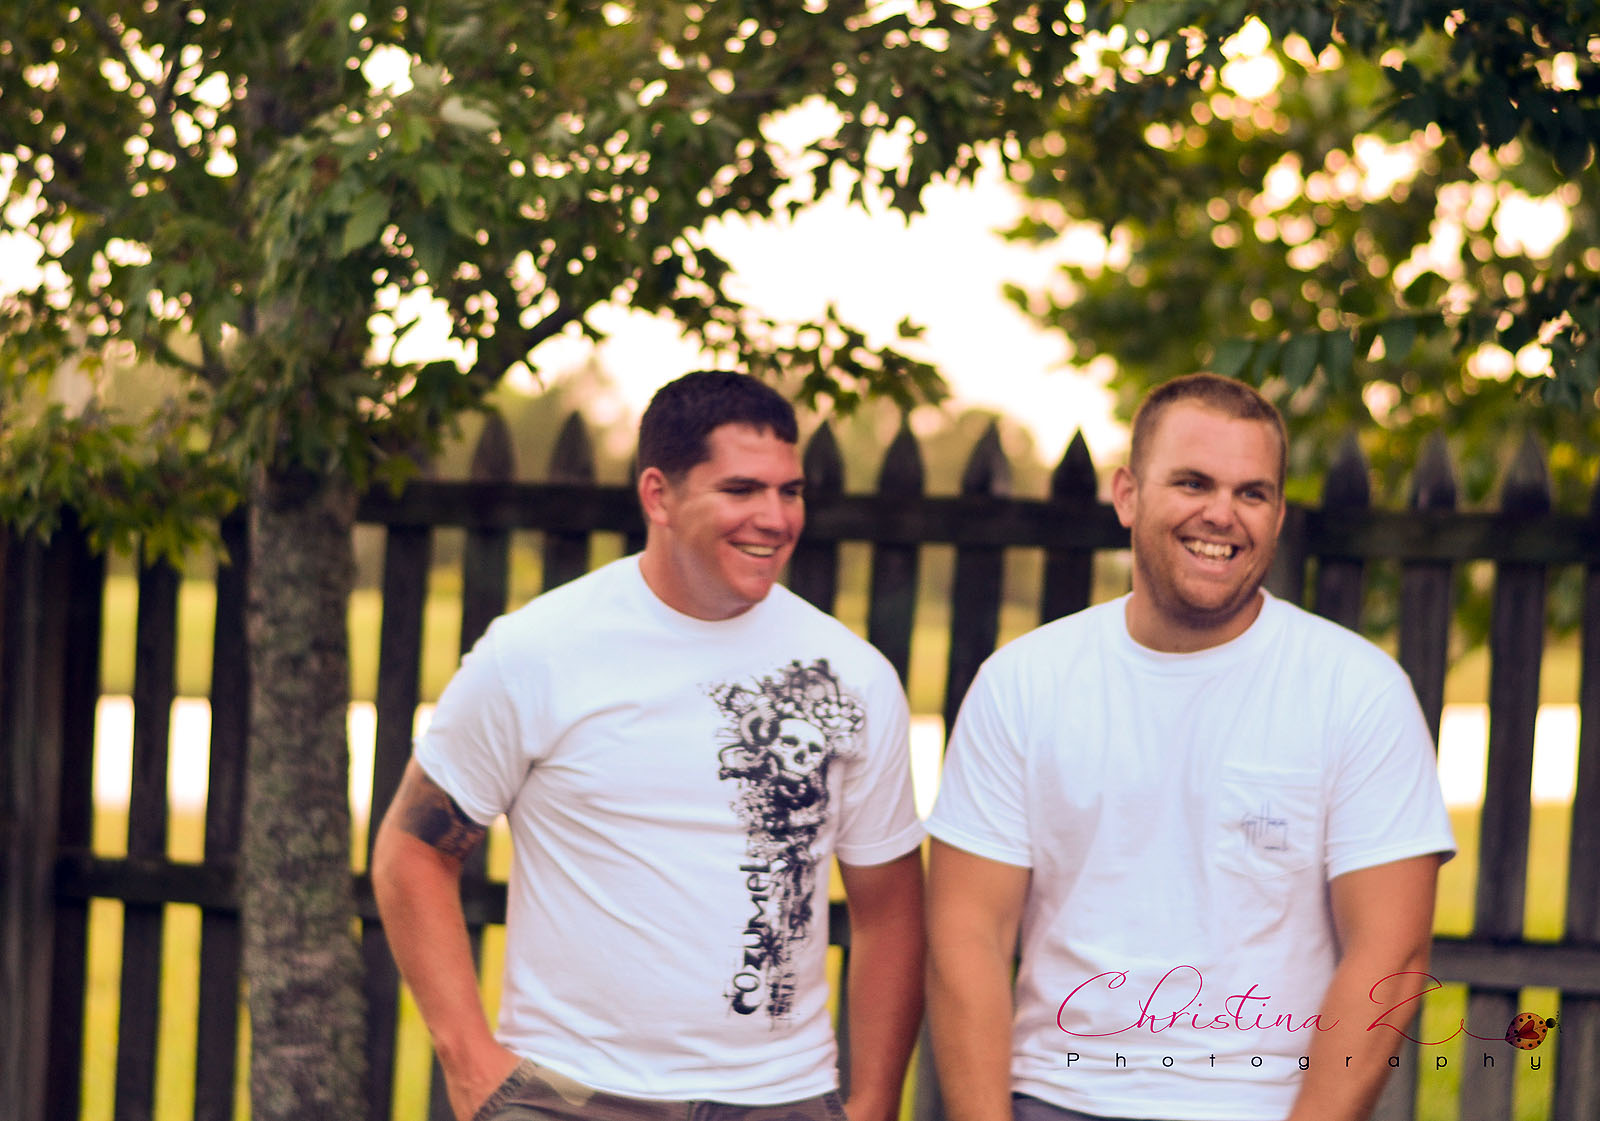 Friends Photo | Christina Z Photography - Orlando FL Photographer